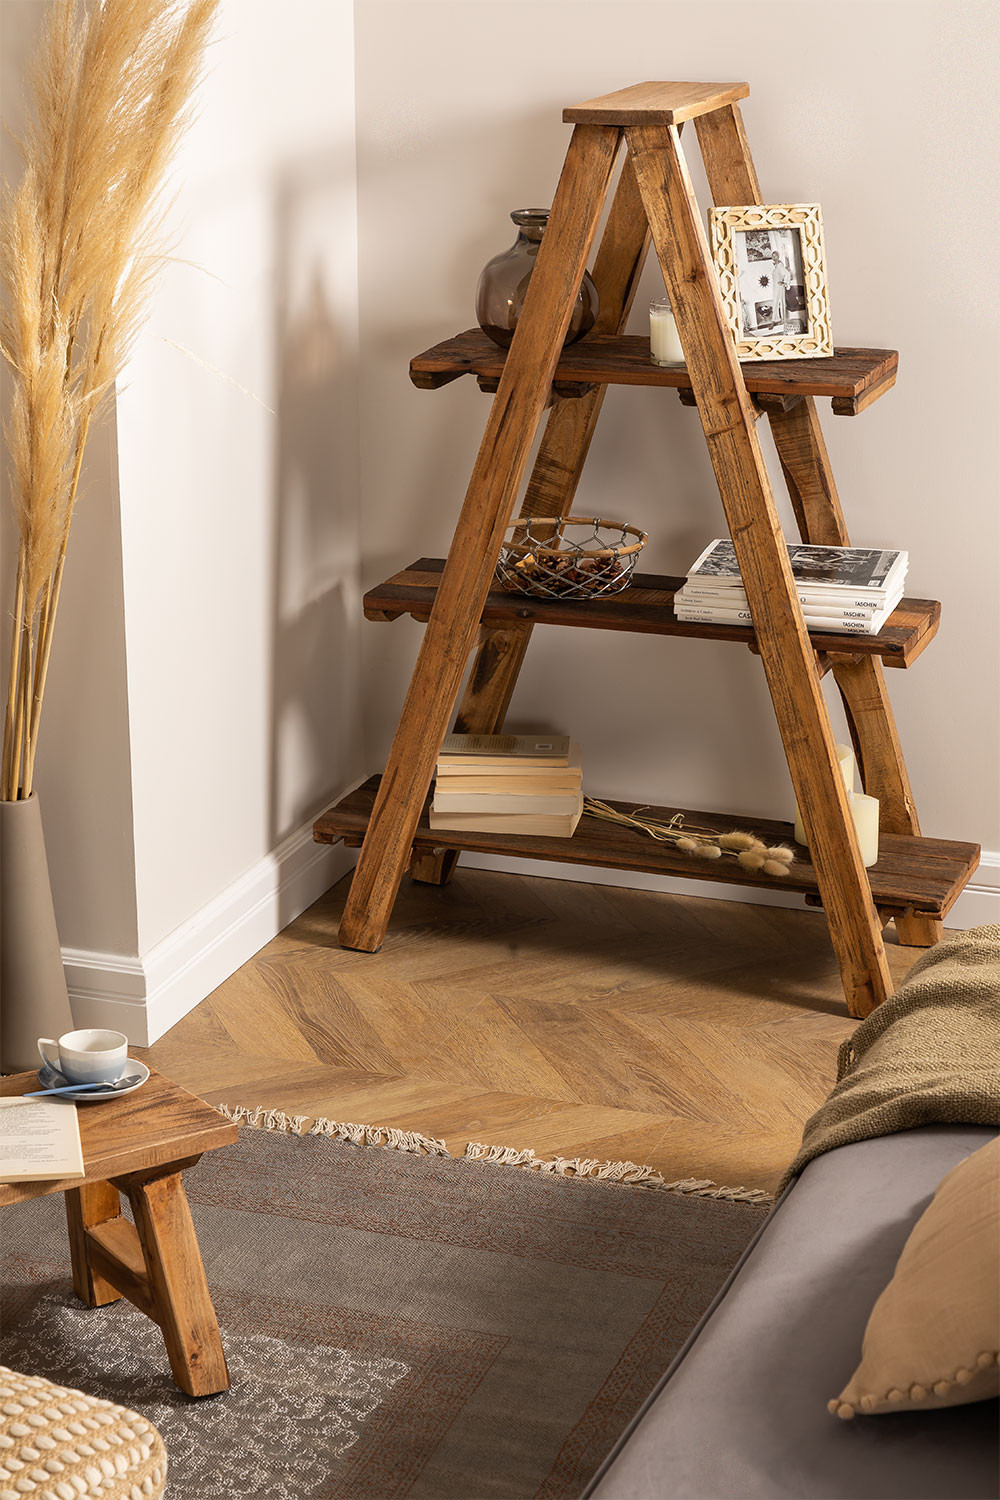 Recycled Wood Shelving Anpers , gallery image 1